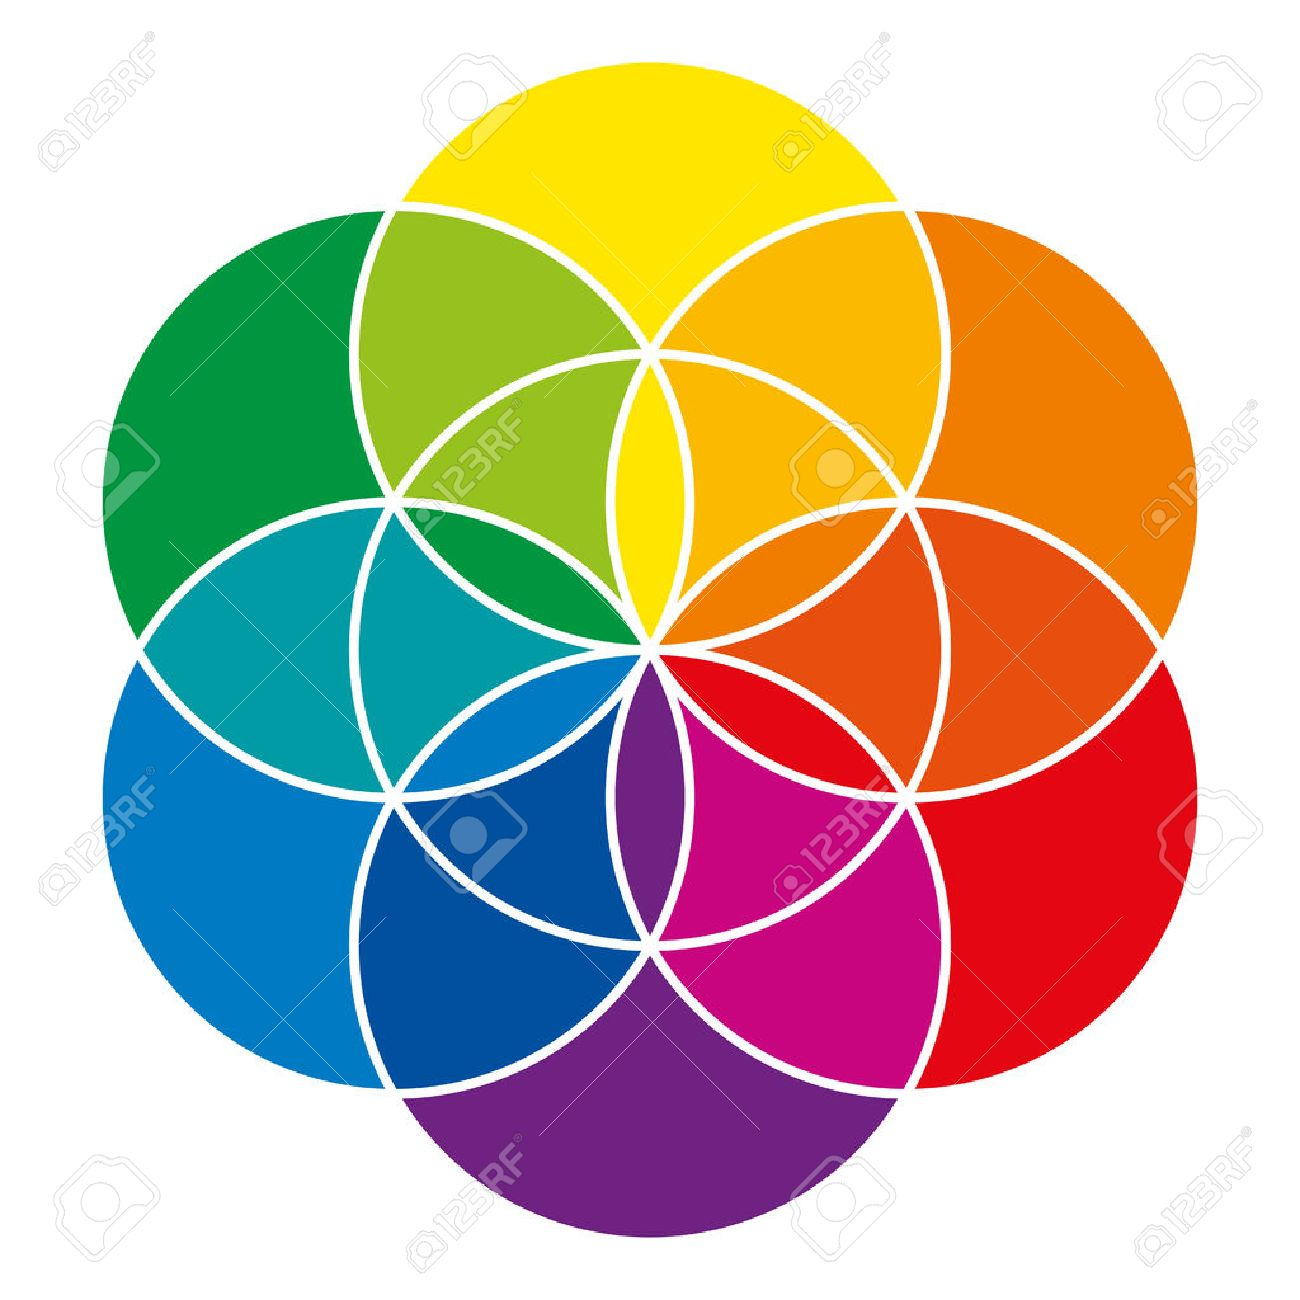 Rainbow colored Seed of Life and Color wheel, showing complementary colors  that is used in